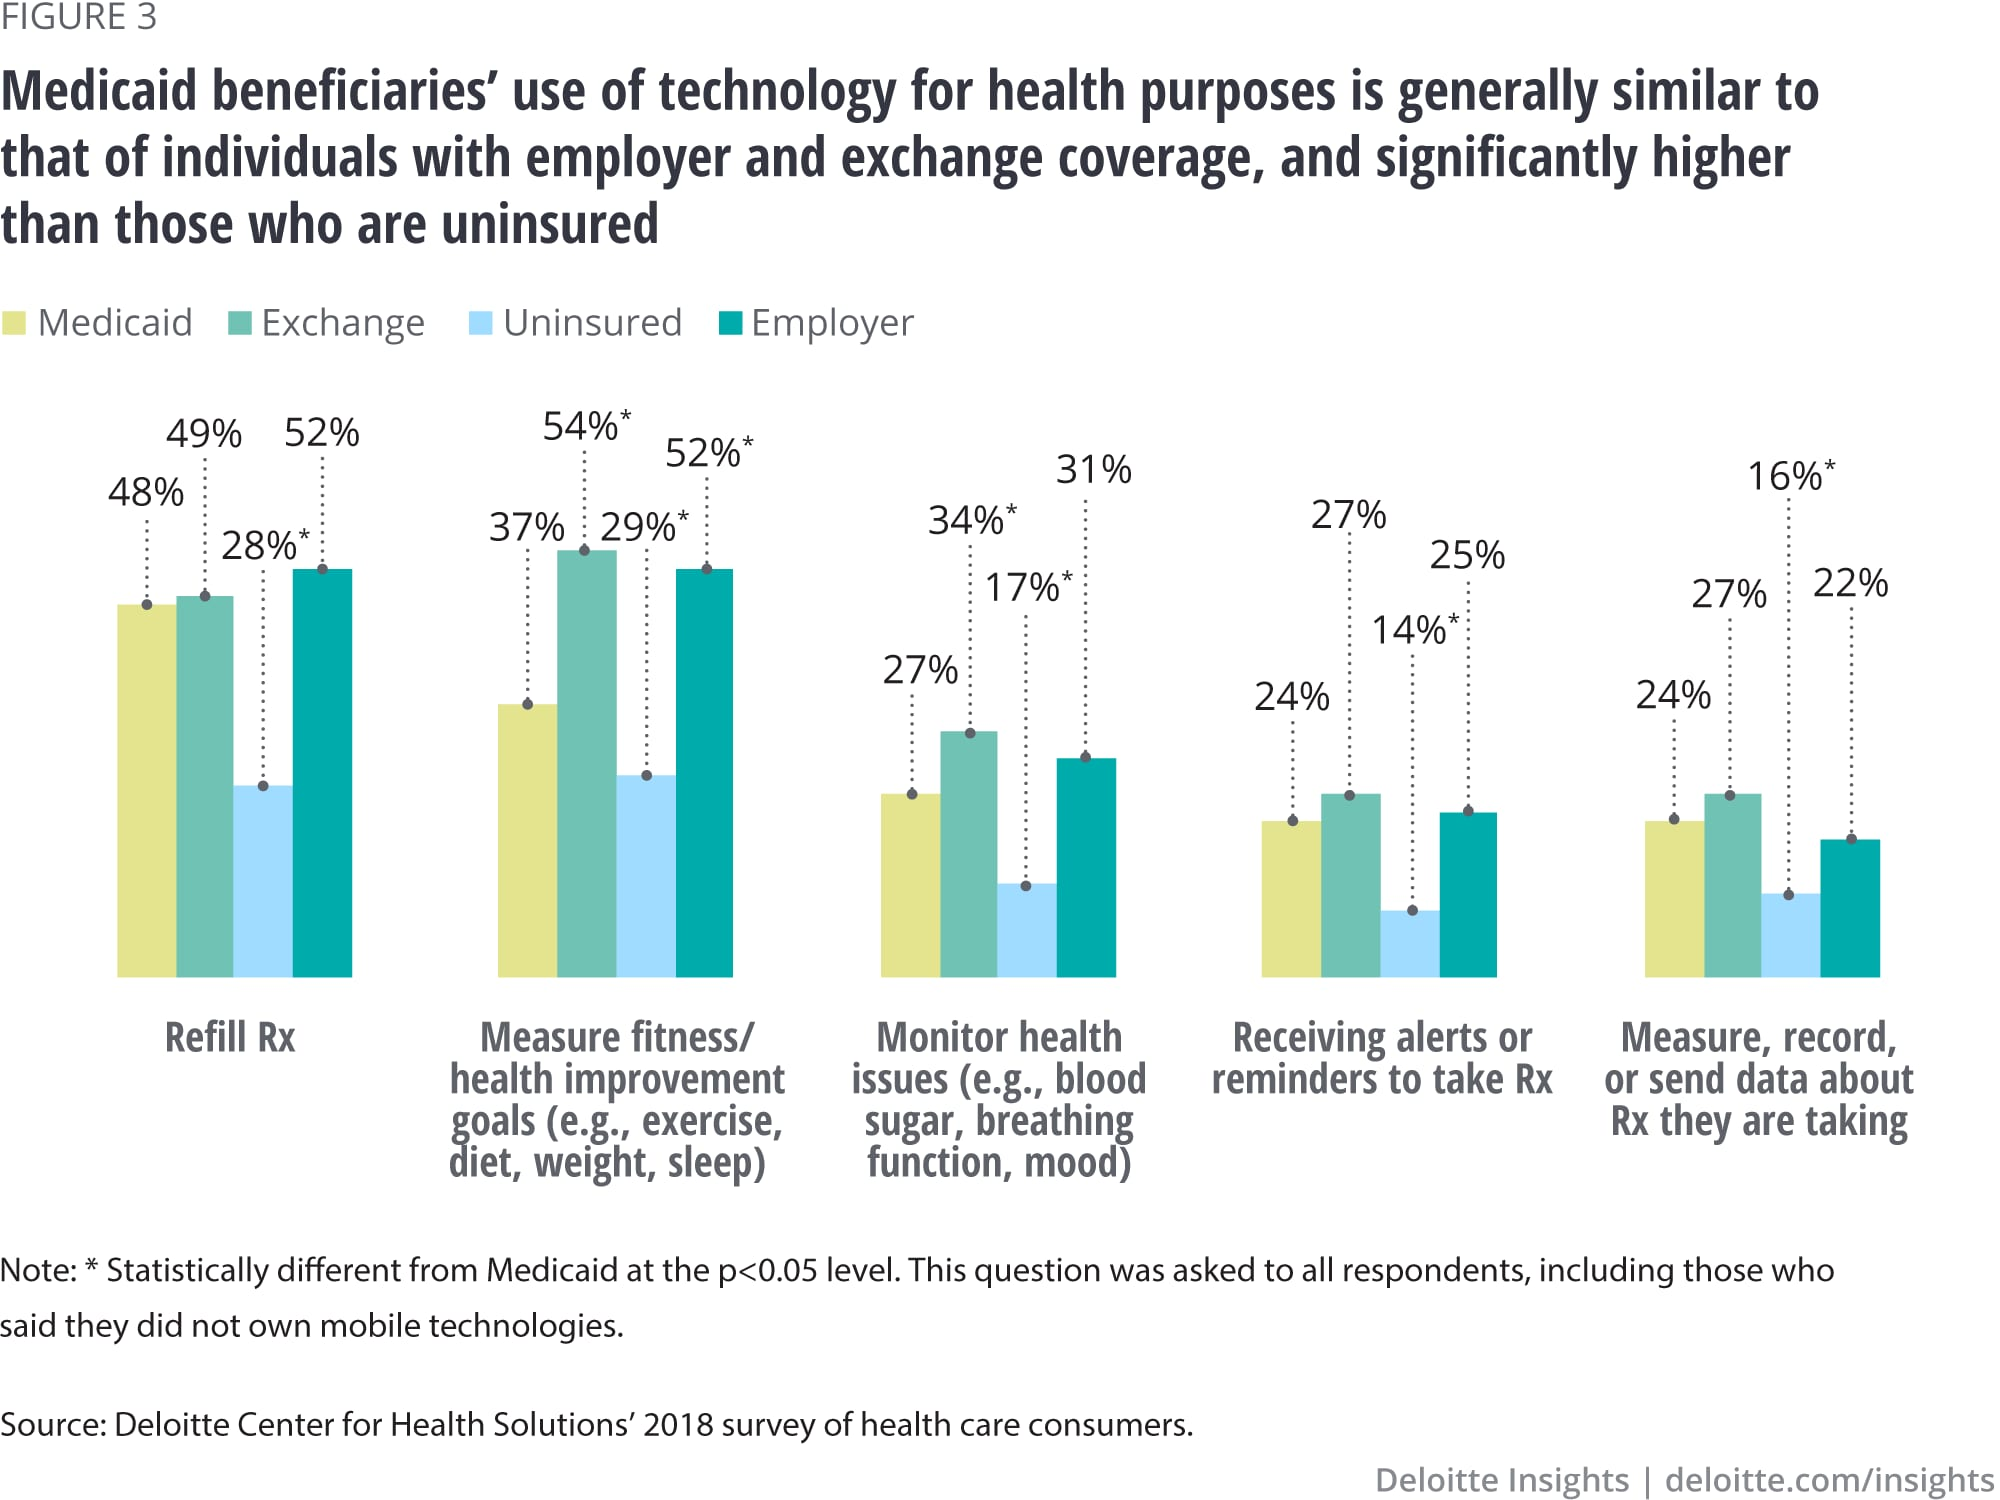 Medicaid beneficiaries' use of technology for health purposes is generally similar to that of individuals with employer and exchange coverage, and significantly higher than those who are uninsured